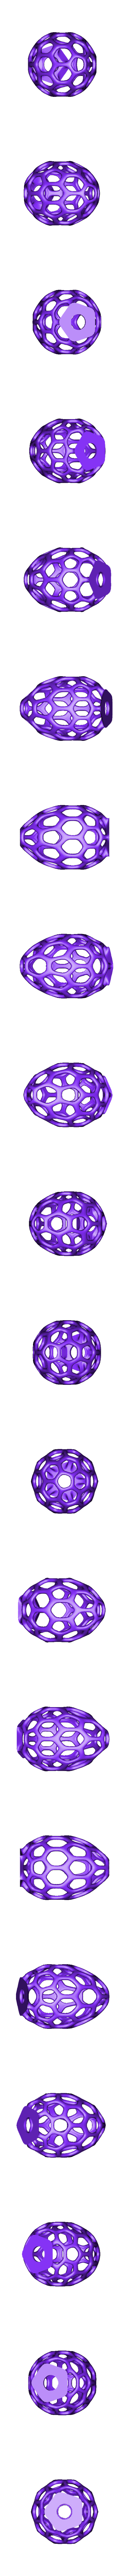 Easter_Egg_in_Cage_the_cage.stl Download free STL file Egg in Egg cage - two colors with single extruder • 3D printer template, c47